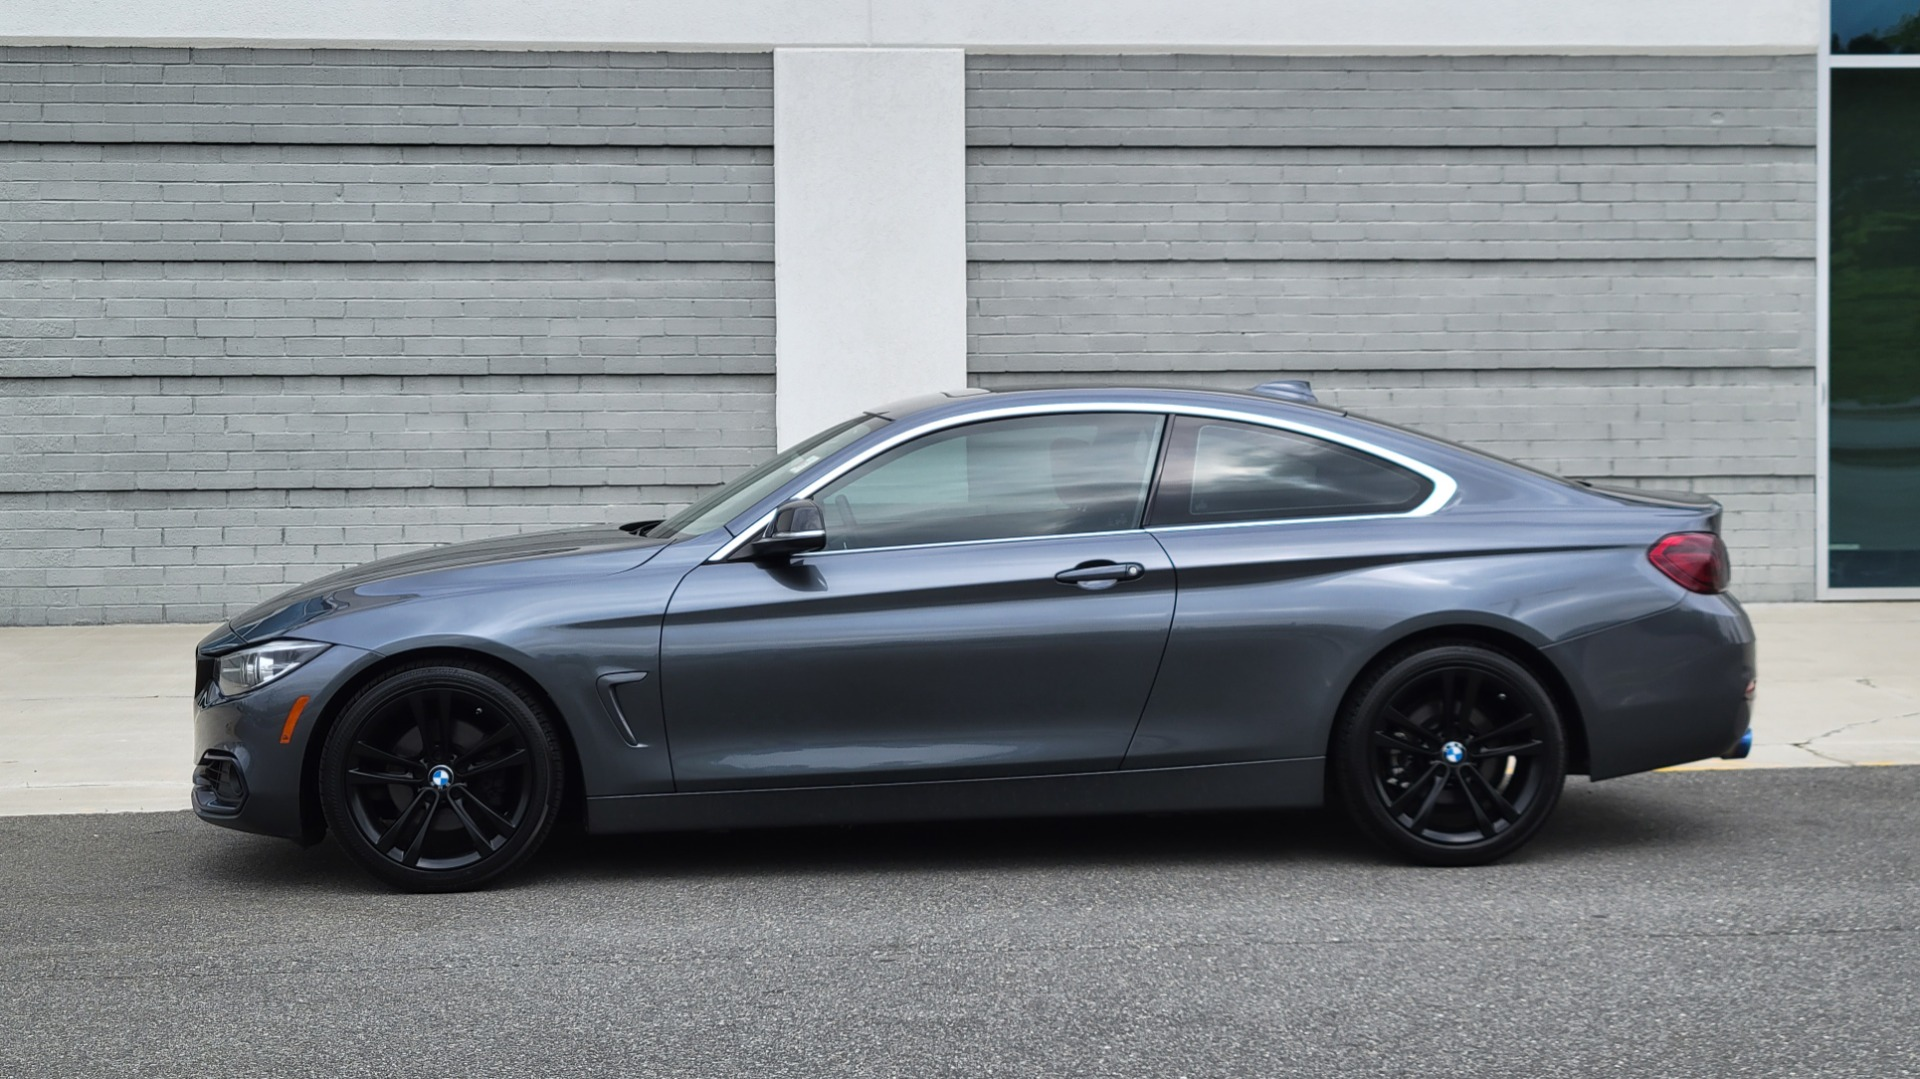 Used 2019 BMW 4 SERIES 430I COUPE 2.0L / RWD / DRVR ASST / CONV PKG / SUNROOF / REARVIEW for sale $32,295 at Formula Imports in Charlotte NC 28227 3